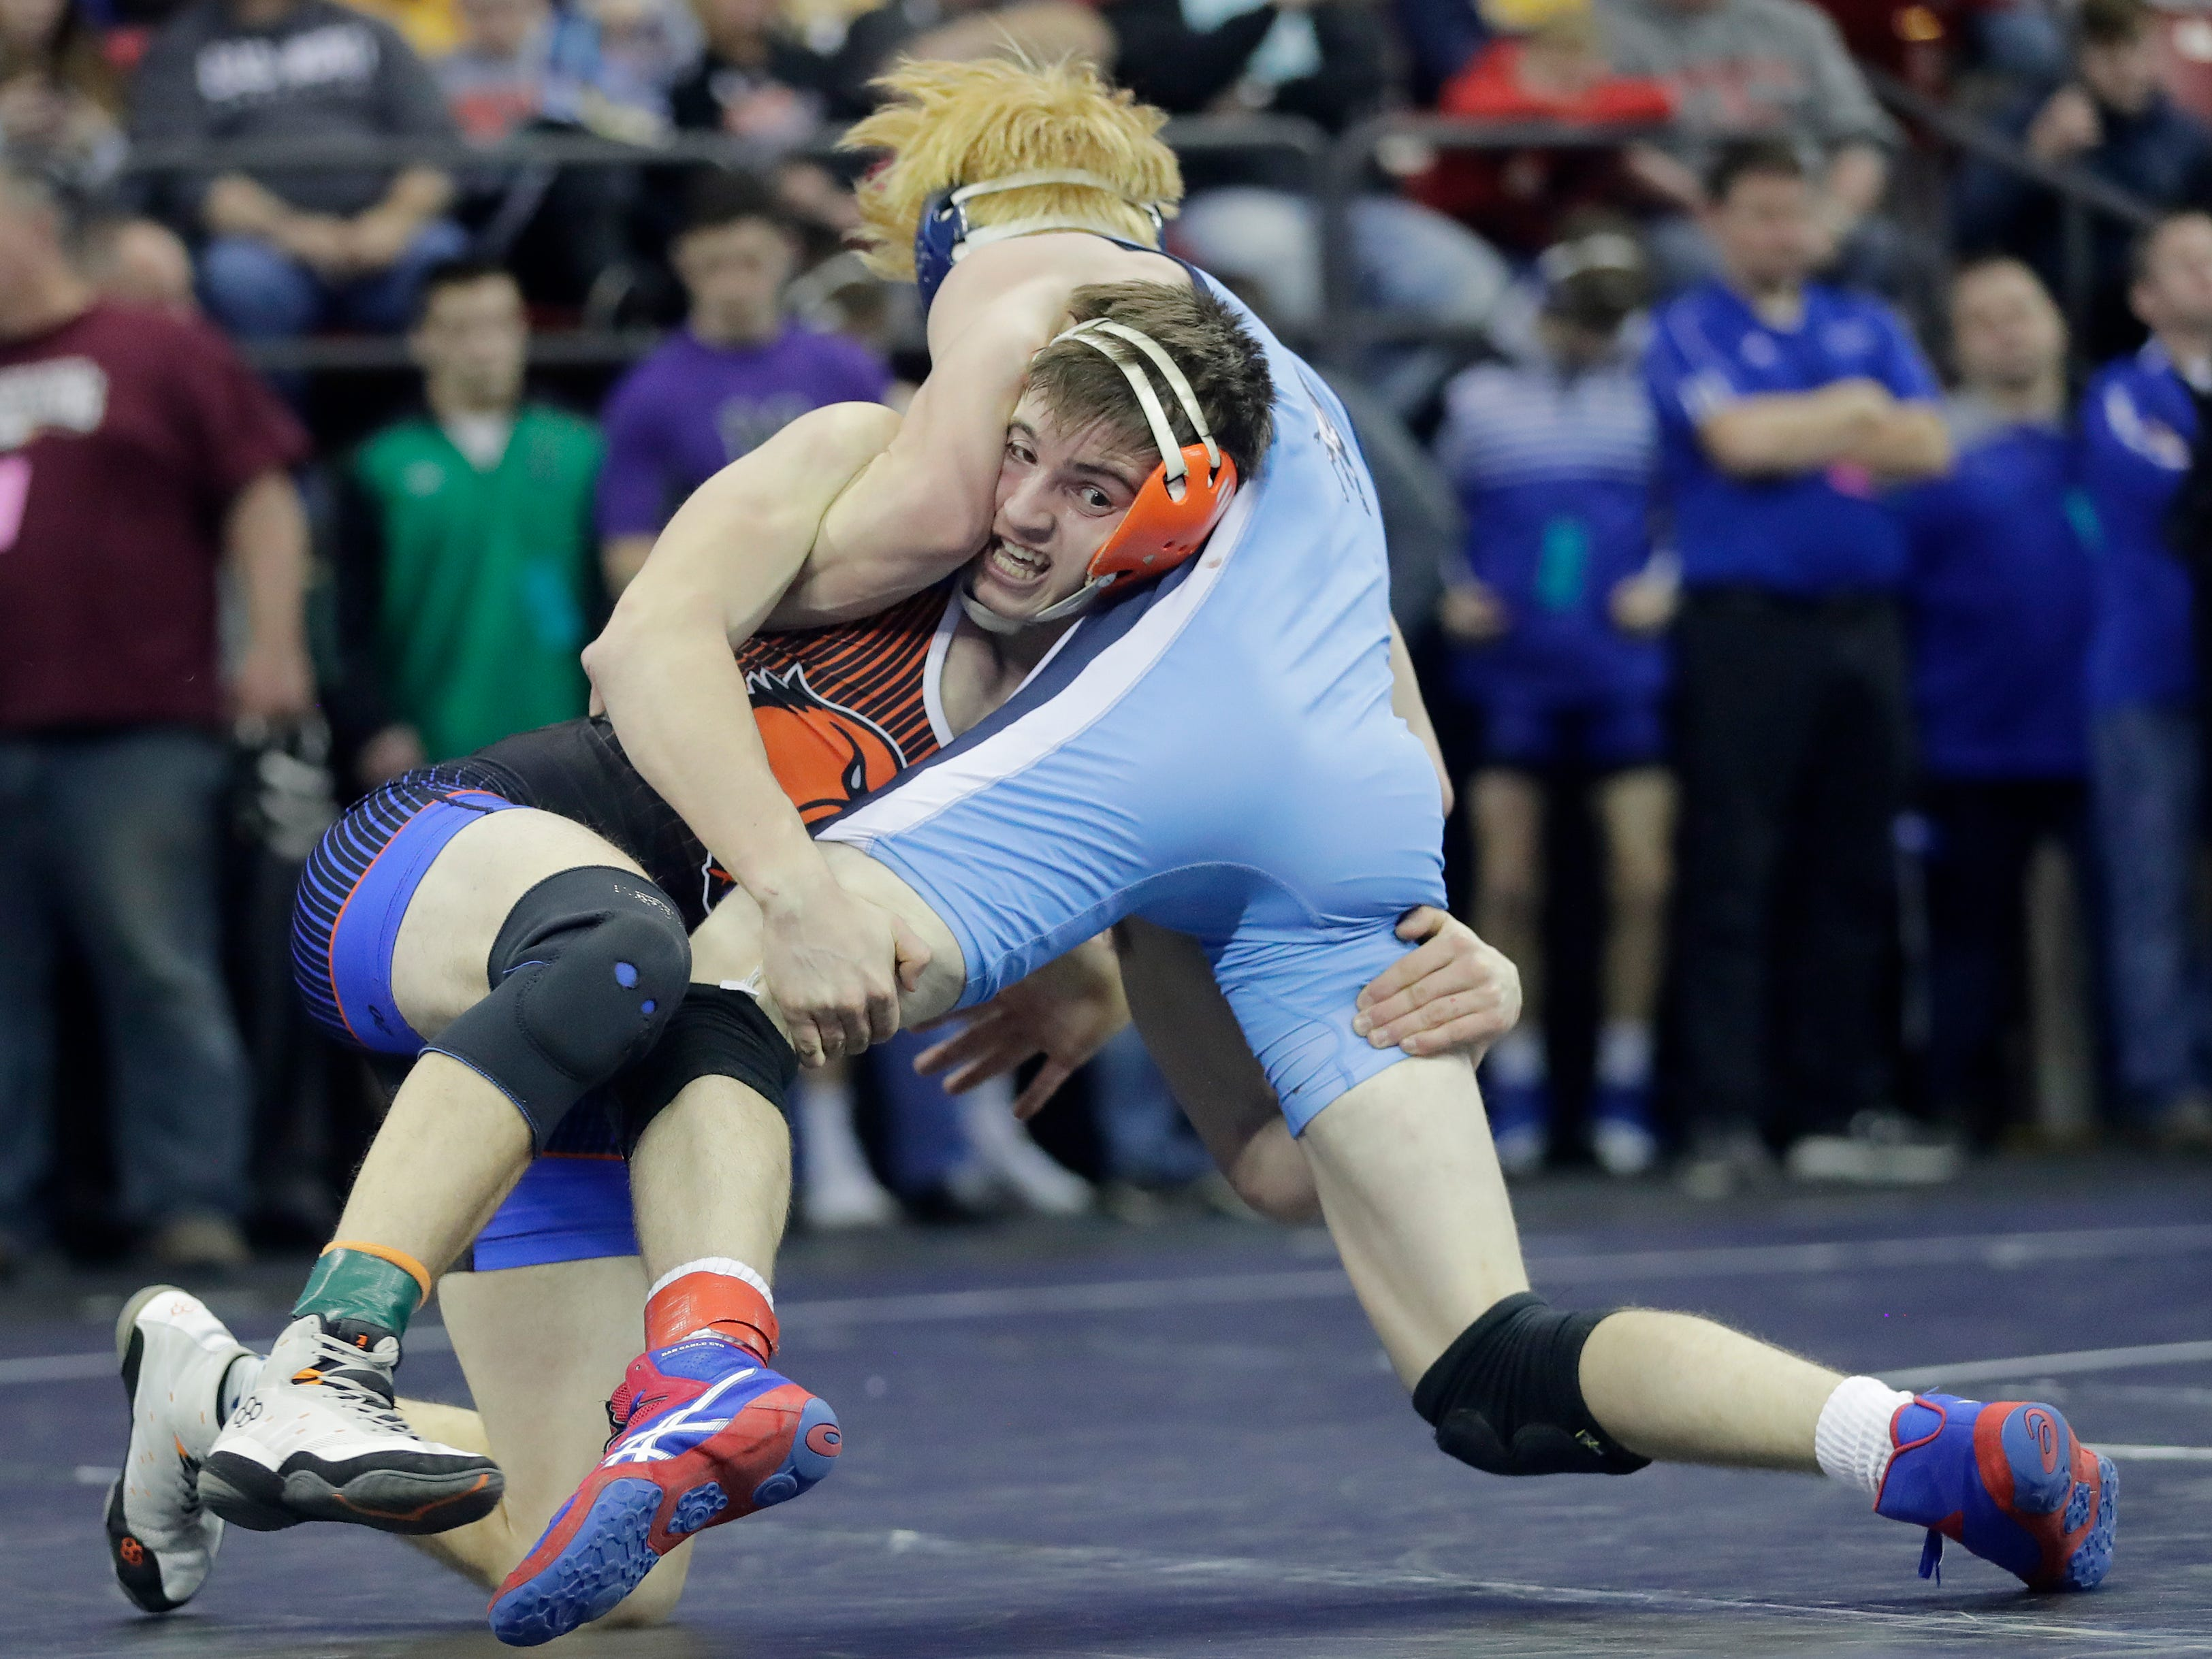 North Fon du Lac/St Mary's Springs Andrew Forsythe wrestles Little Chute's Adam Kilgas in a Division 2 145-pound preliminary match at the WIAA state individual wrestling tournament at the Kohl Center on Thursday, February 21, 2019 in Madison, Wis.